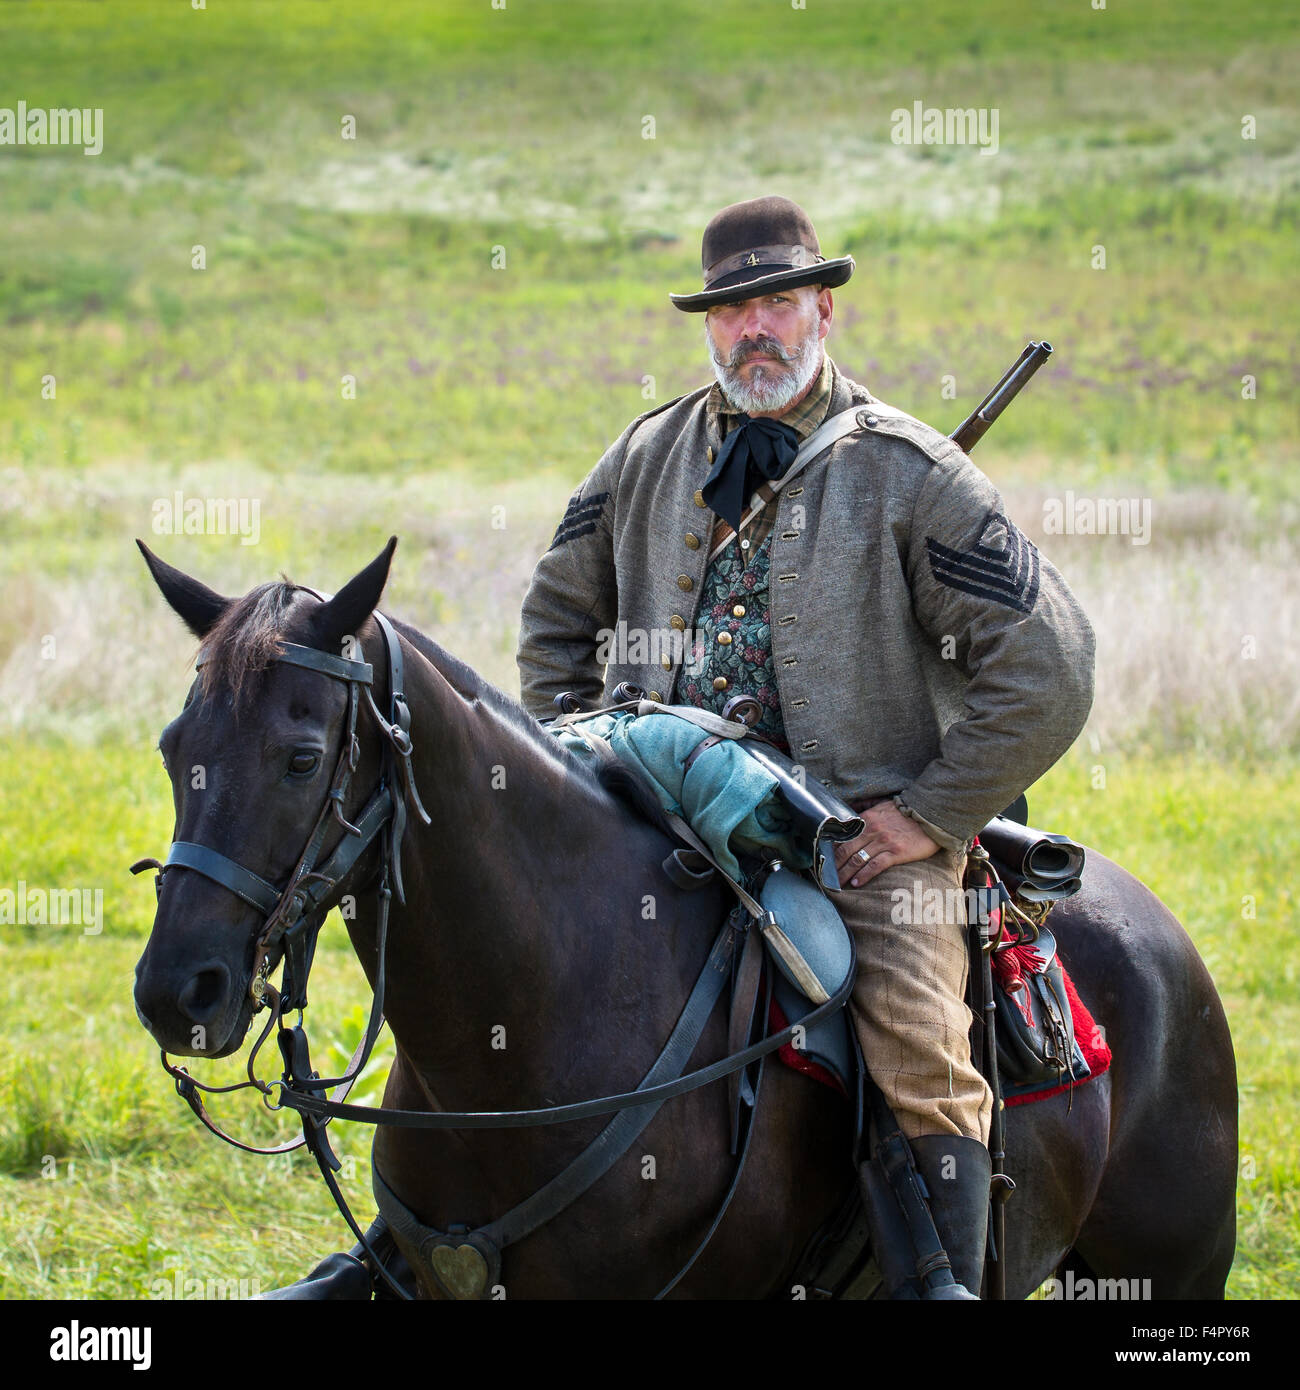 Mounted cavalry confederate soldier reenacts the Battle of Gettysburg - Stock Image